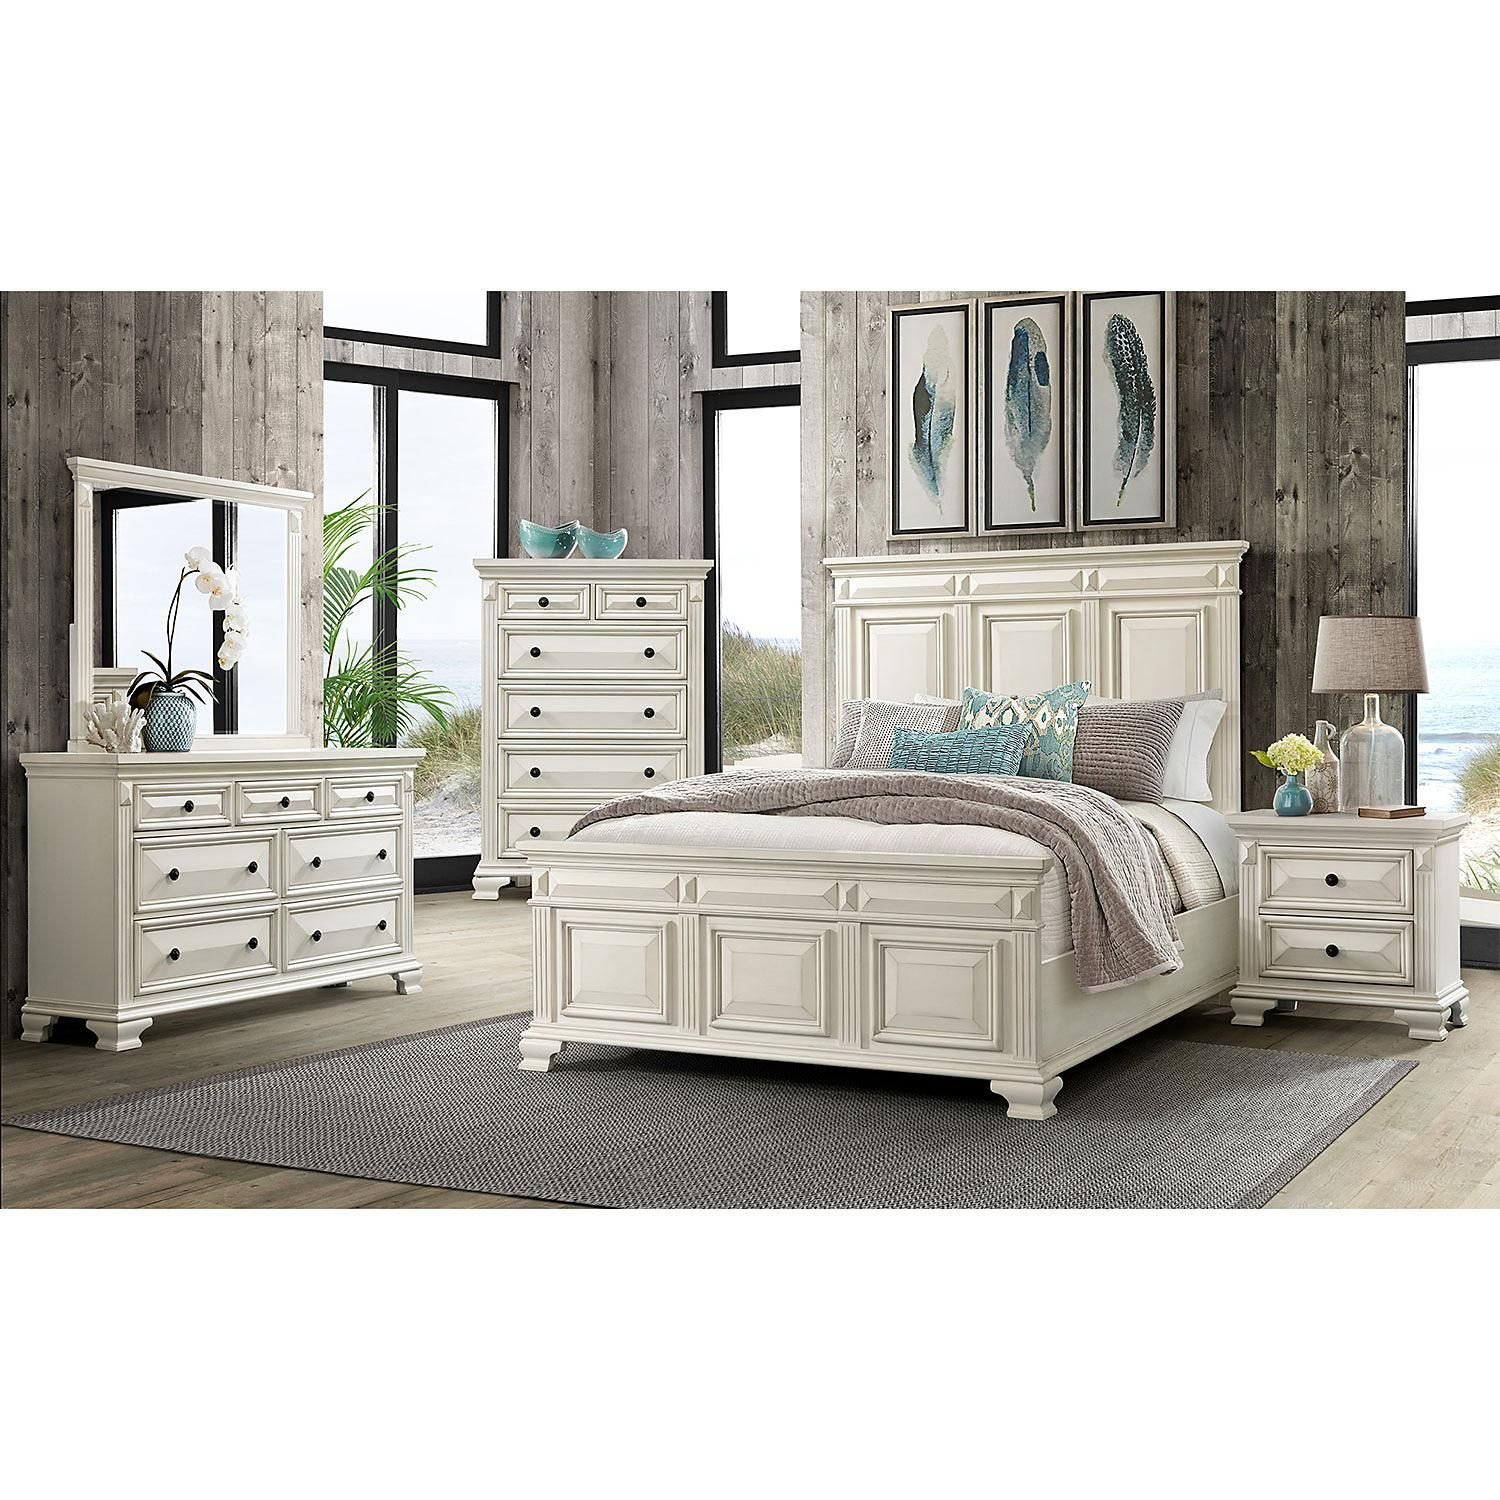 Girls Queen Bedroom Set Awesome $1599 00 society Den Trent Panel 6 Piece King Bedroom Set